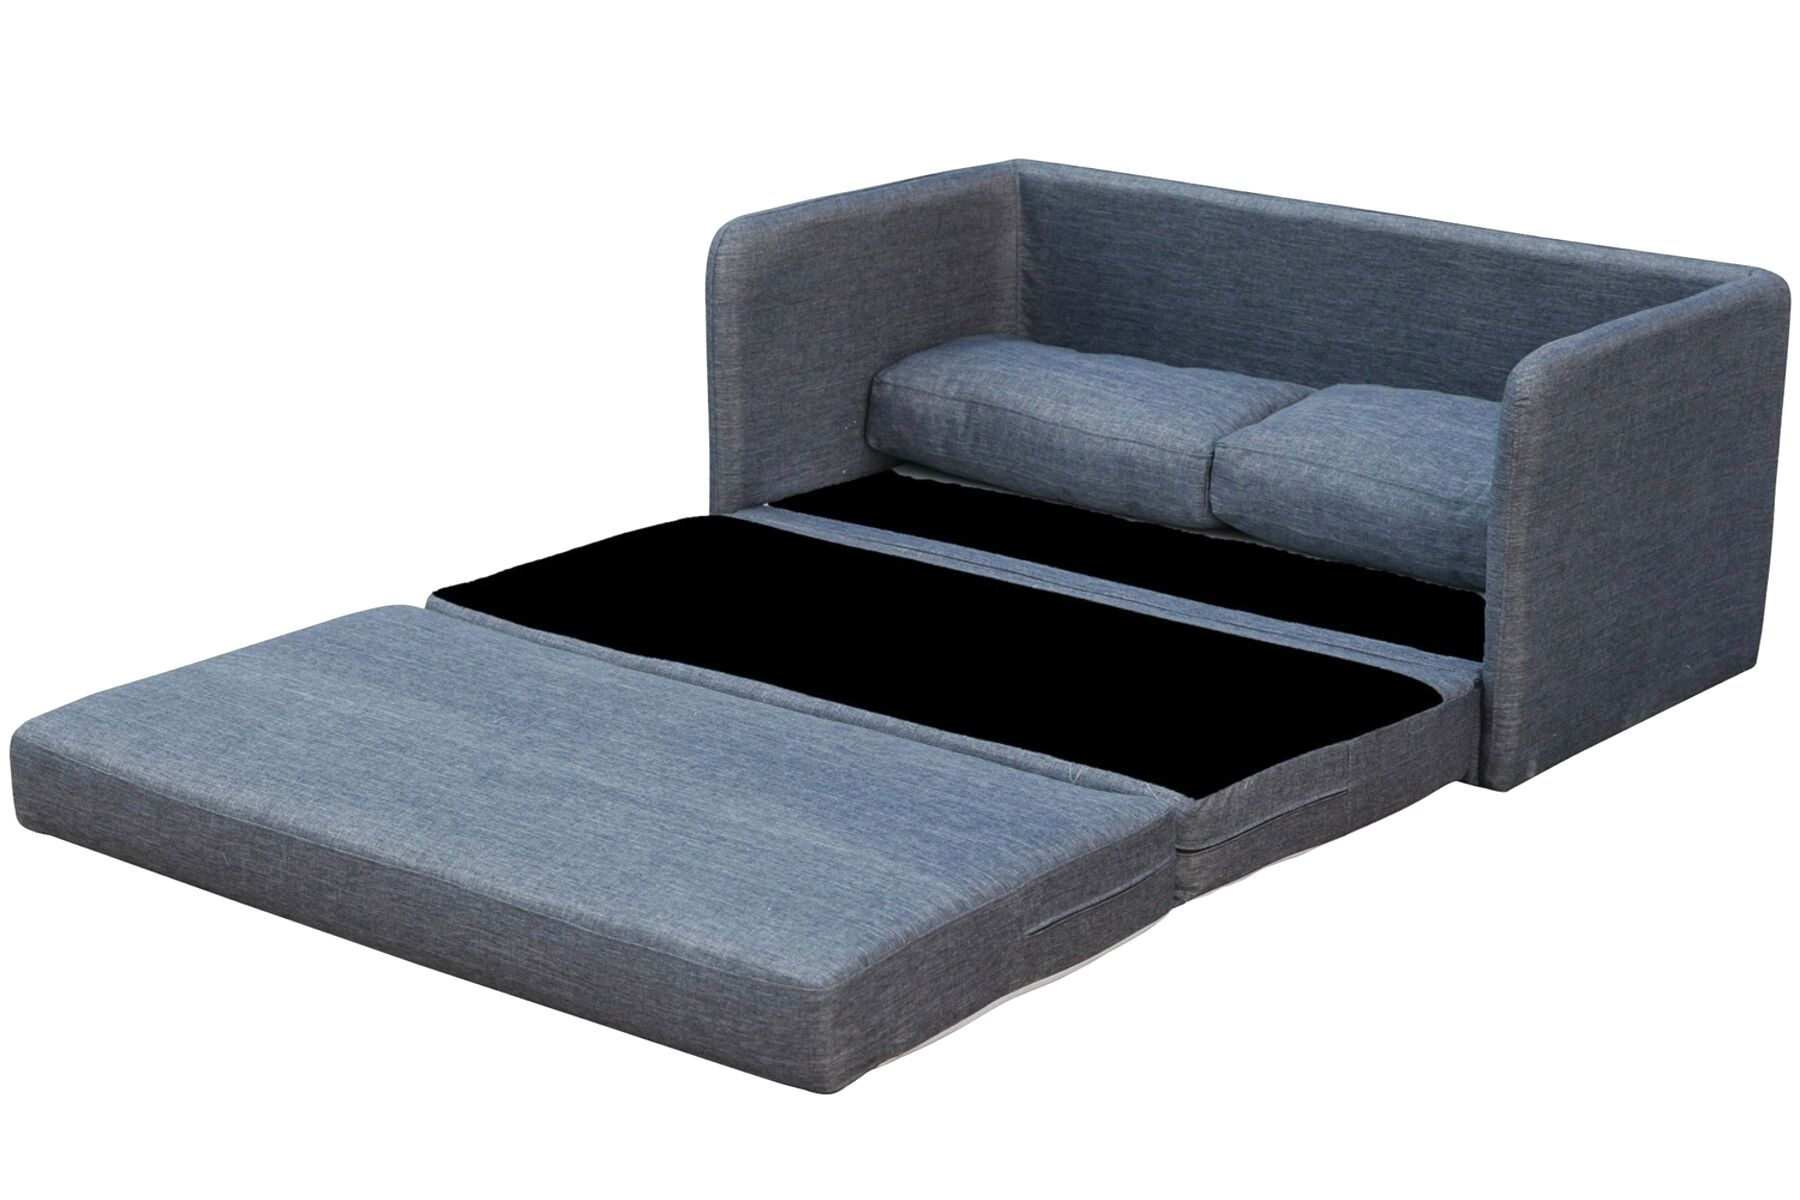 loveseat sofa bed for sale